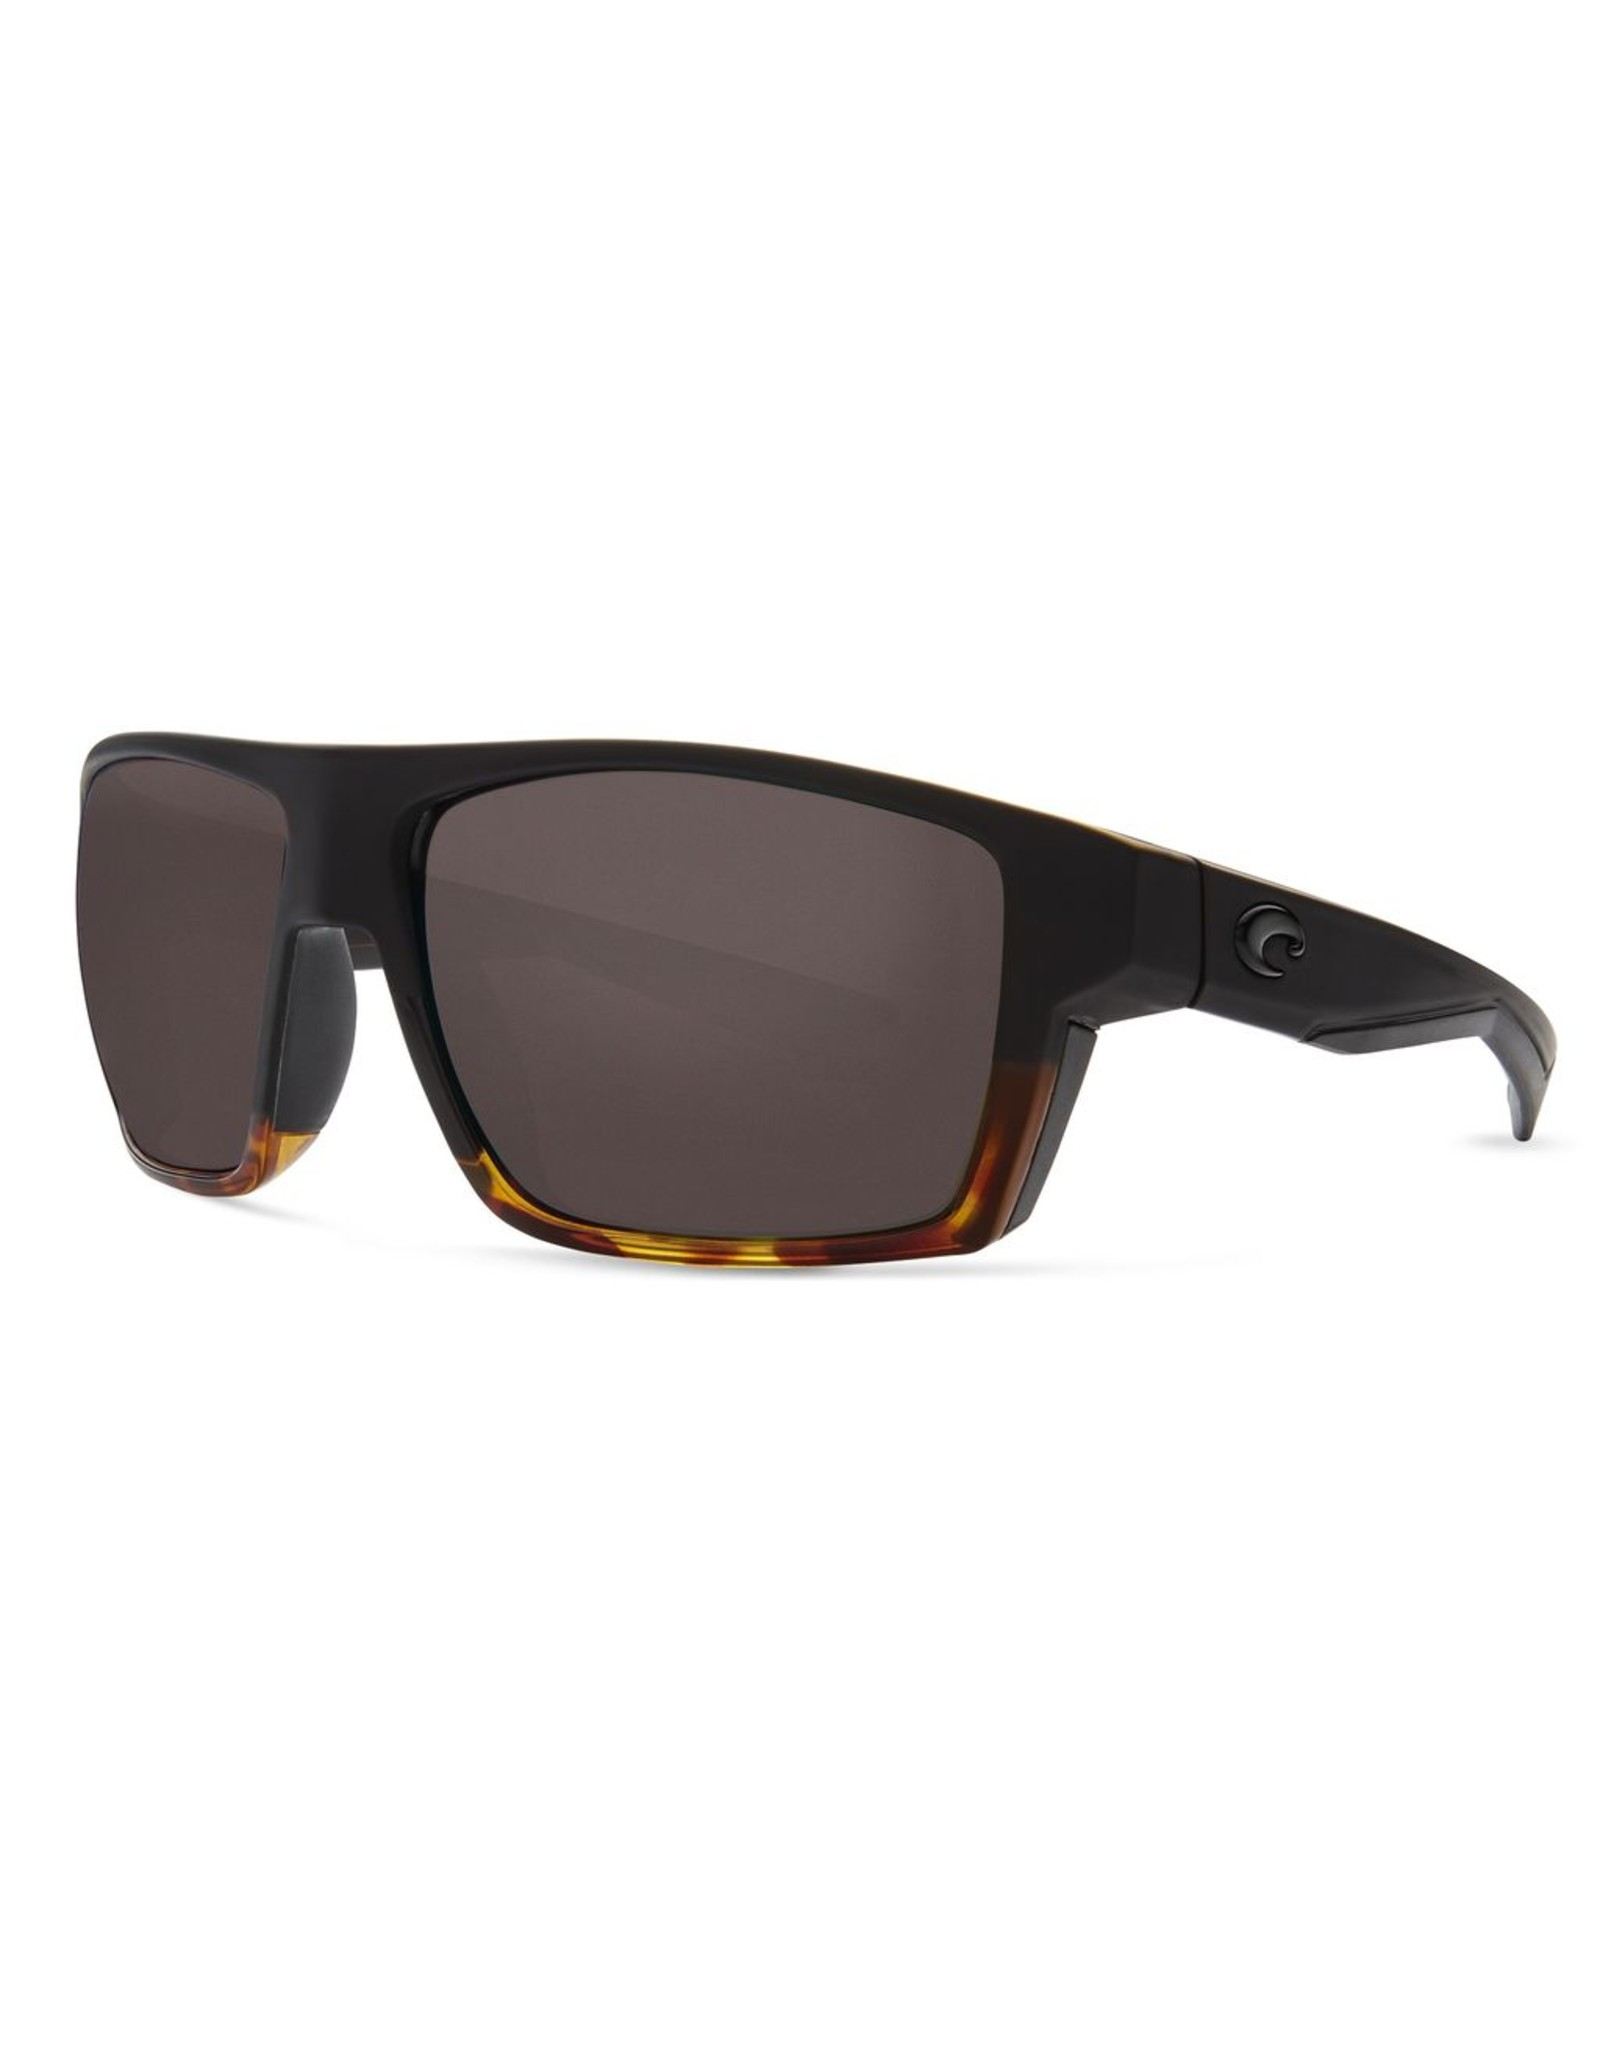 COSTA DEL MAR BLOKE MT BLACK/SH TORTOISE GRAY 580P